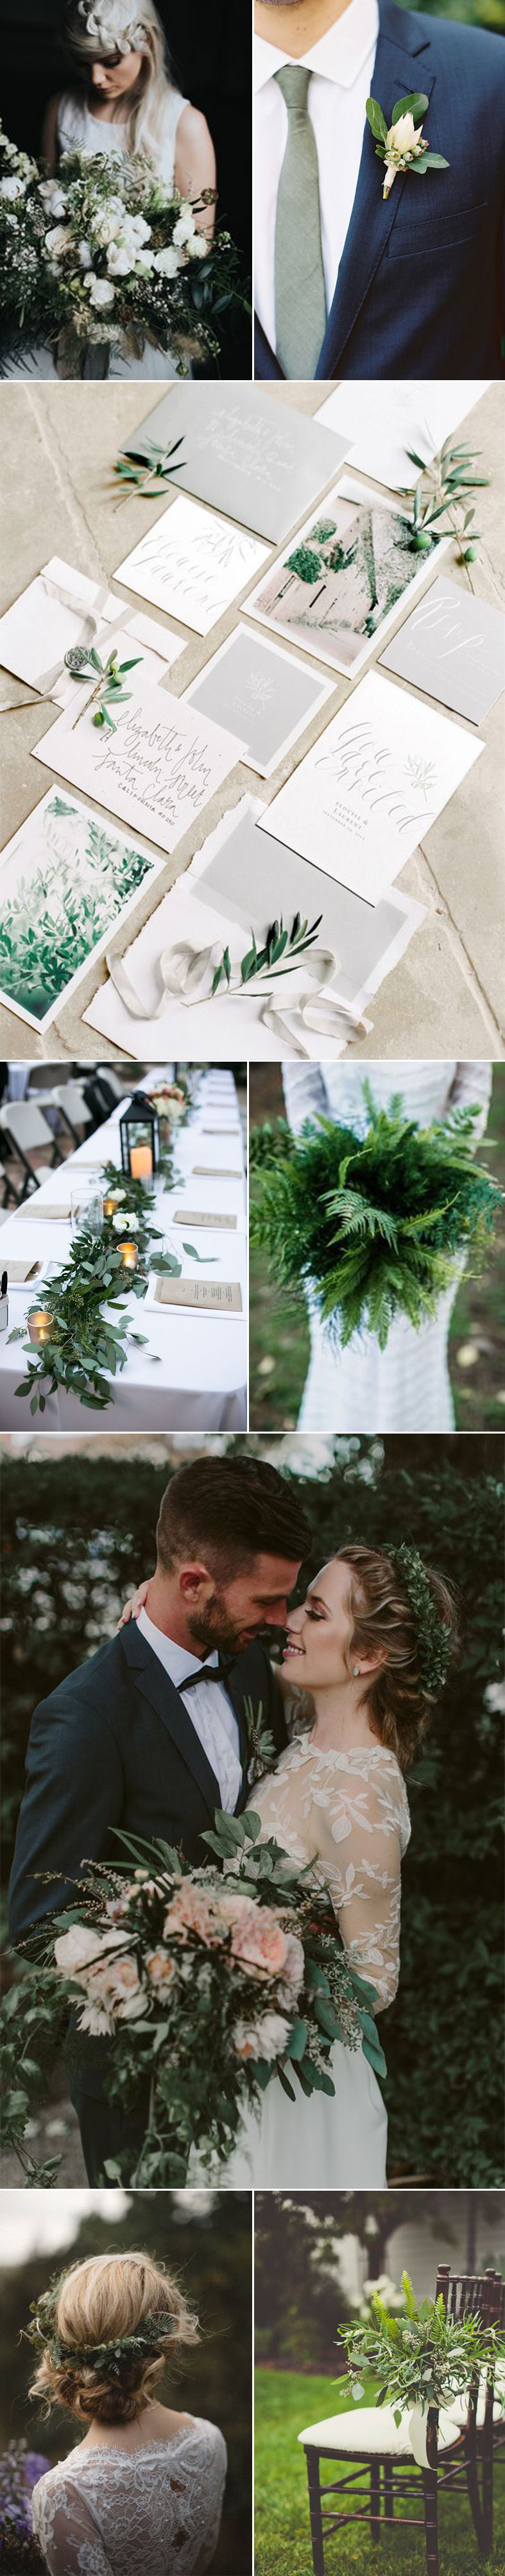 Weddings with Green Foliage